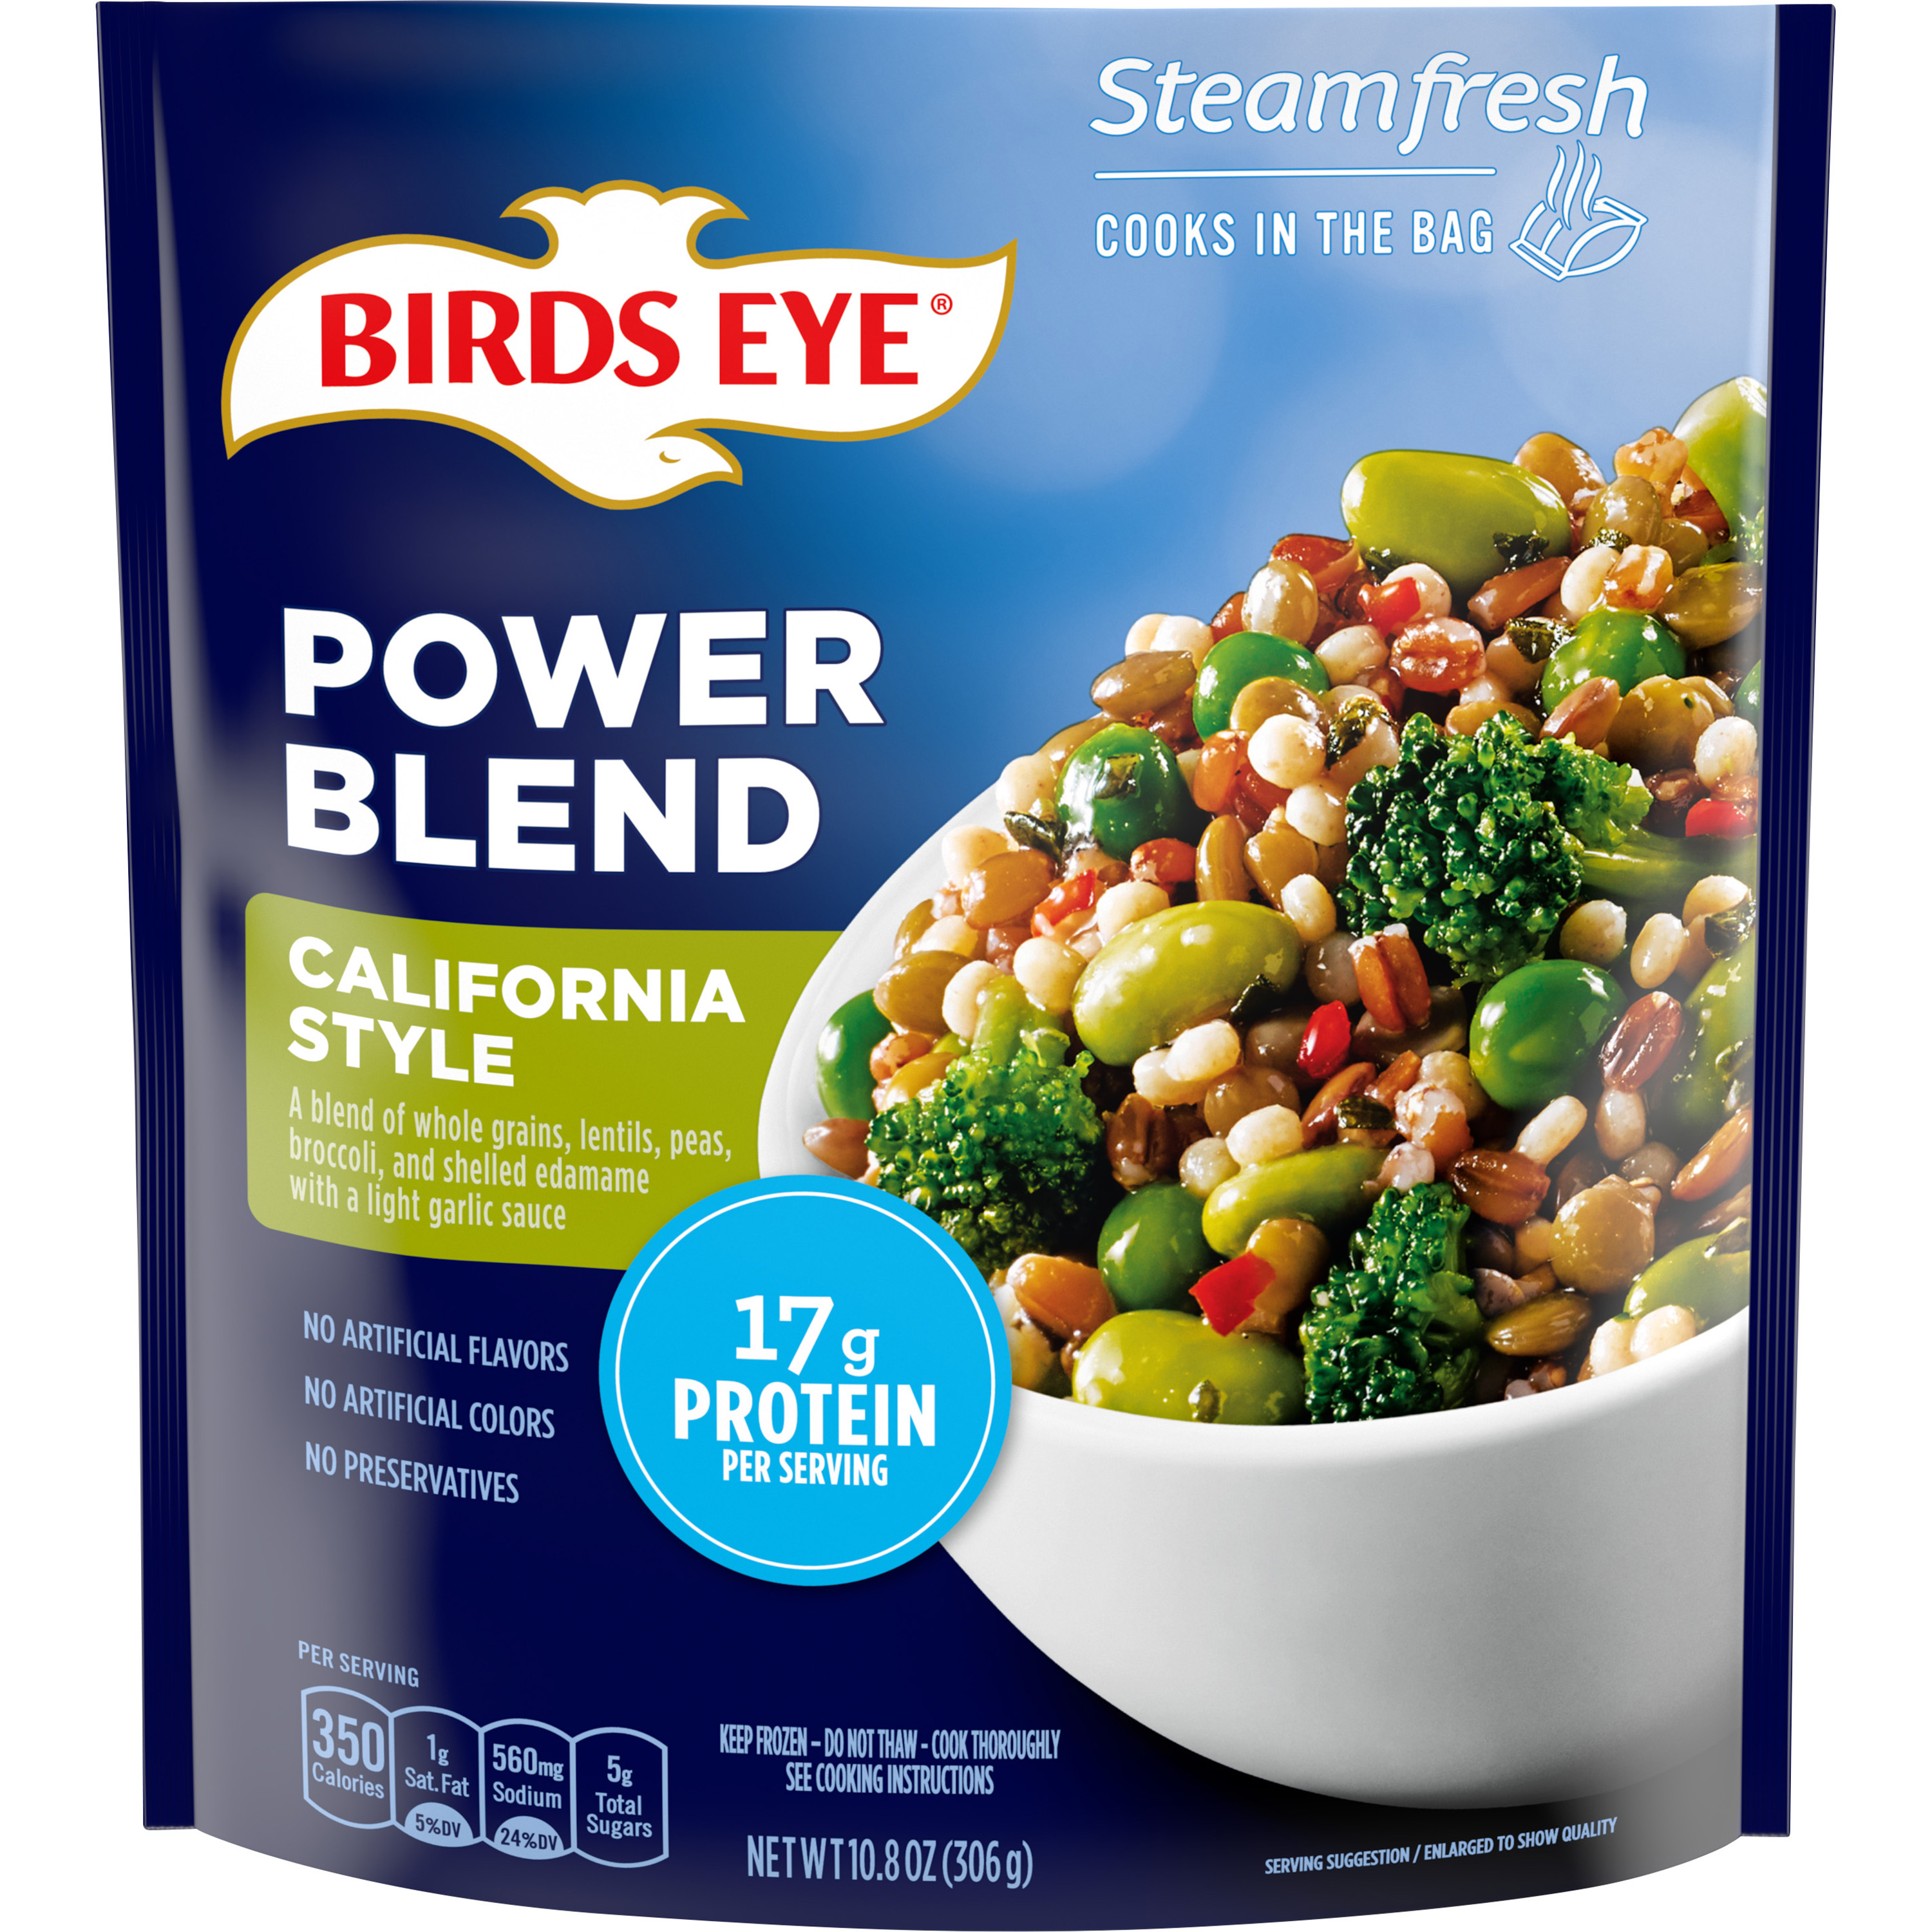 Birds Eye Steamfresh Protein Blends California Style